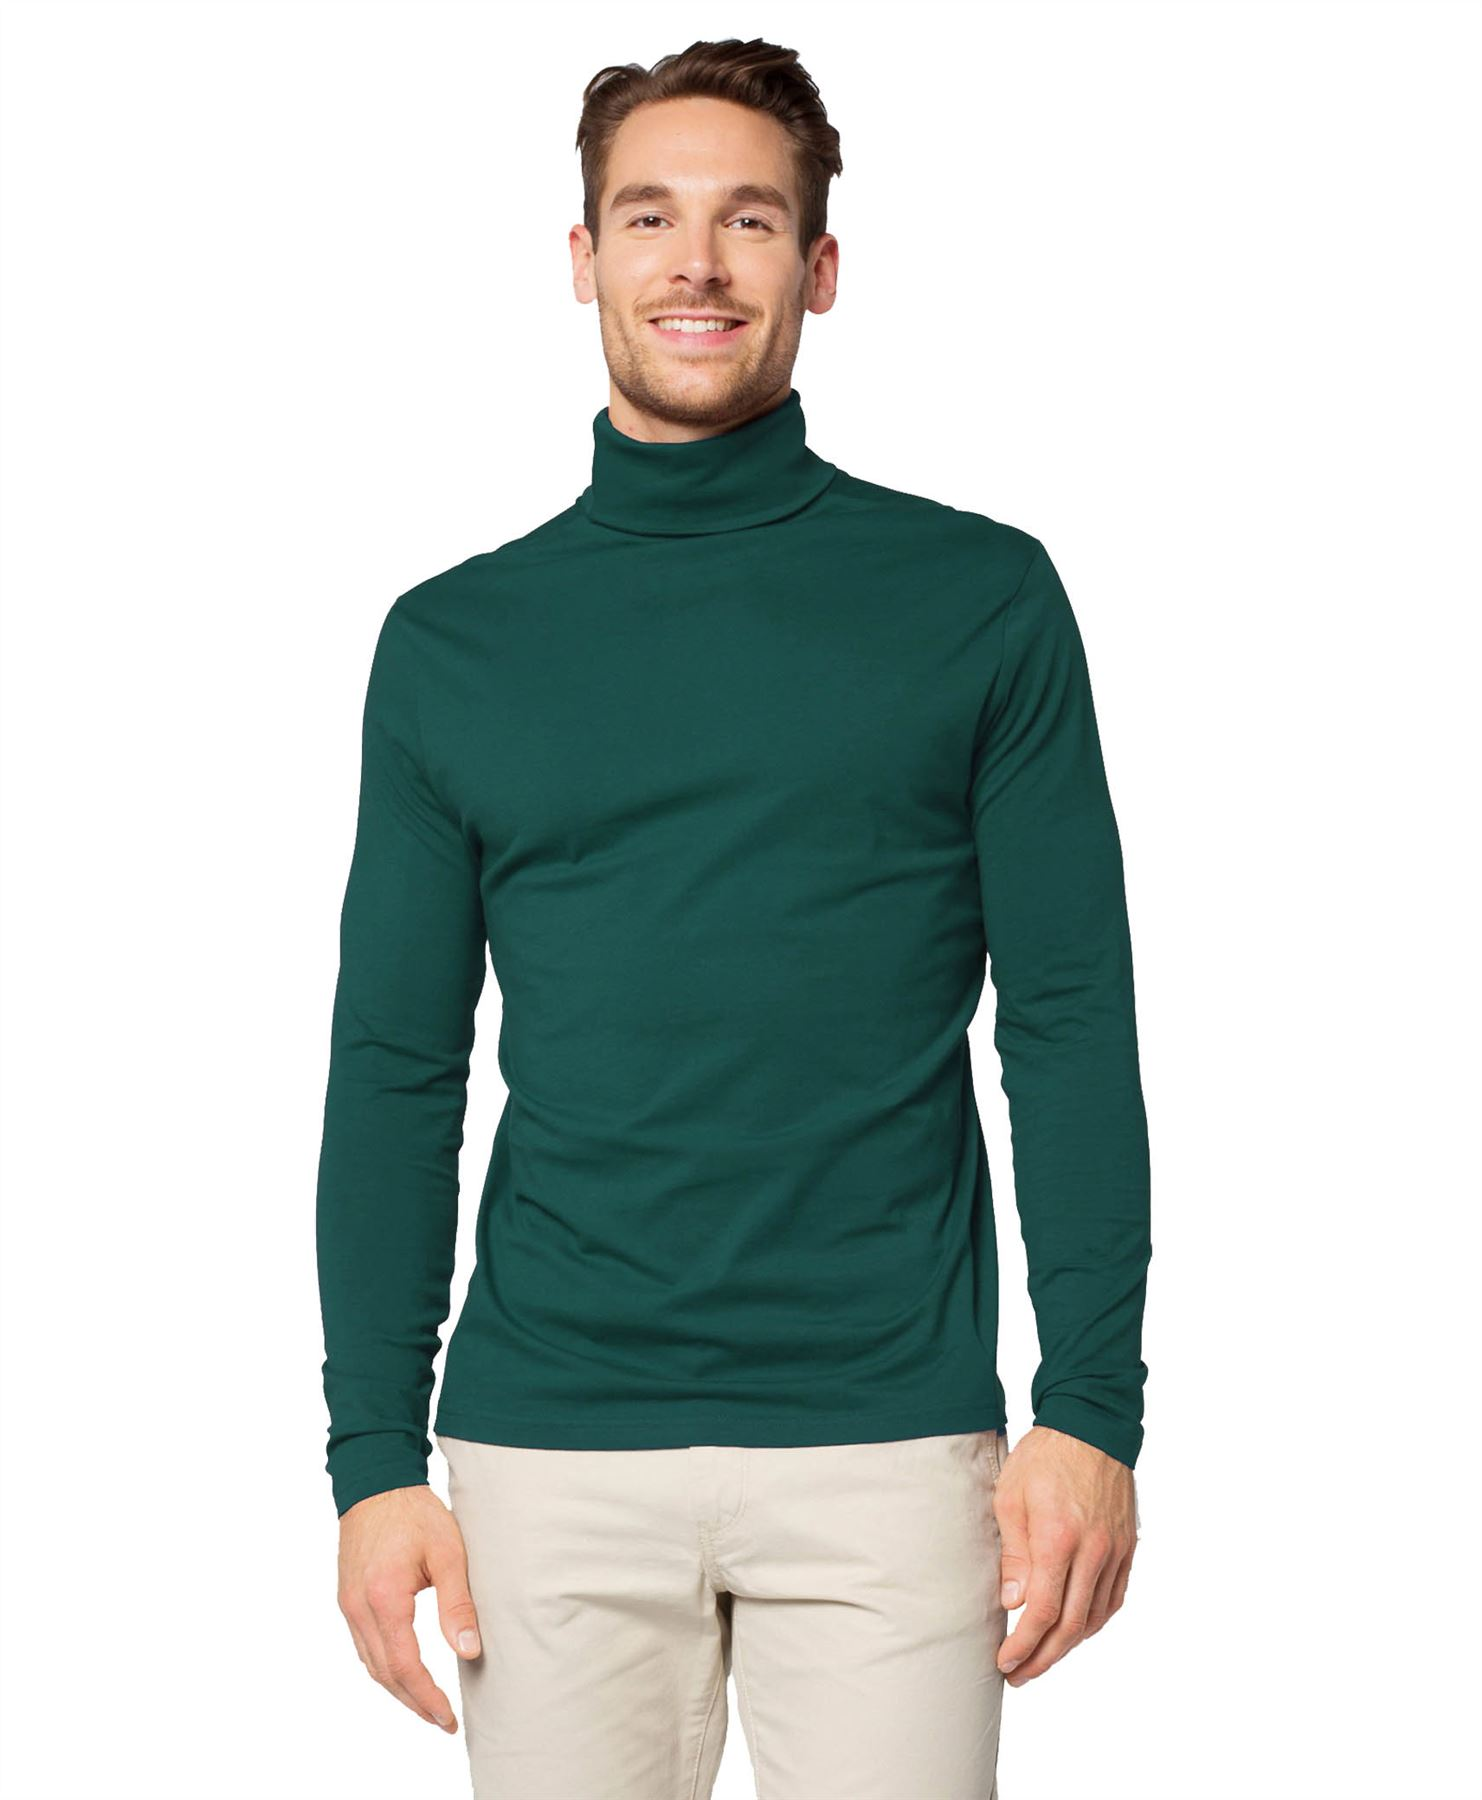 Mens jersey turtle neck plain cotton top long sleeve for Turtle shirts for men